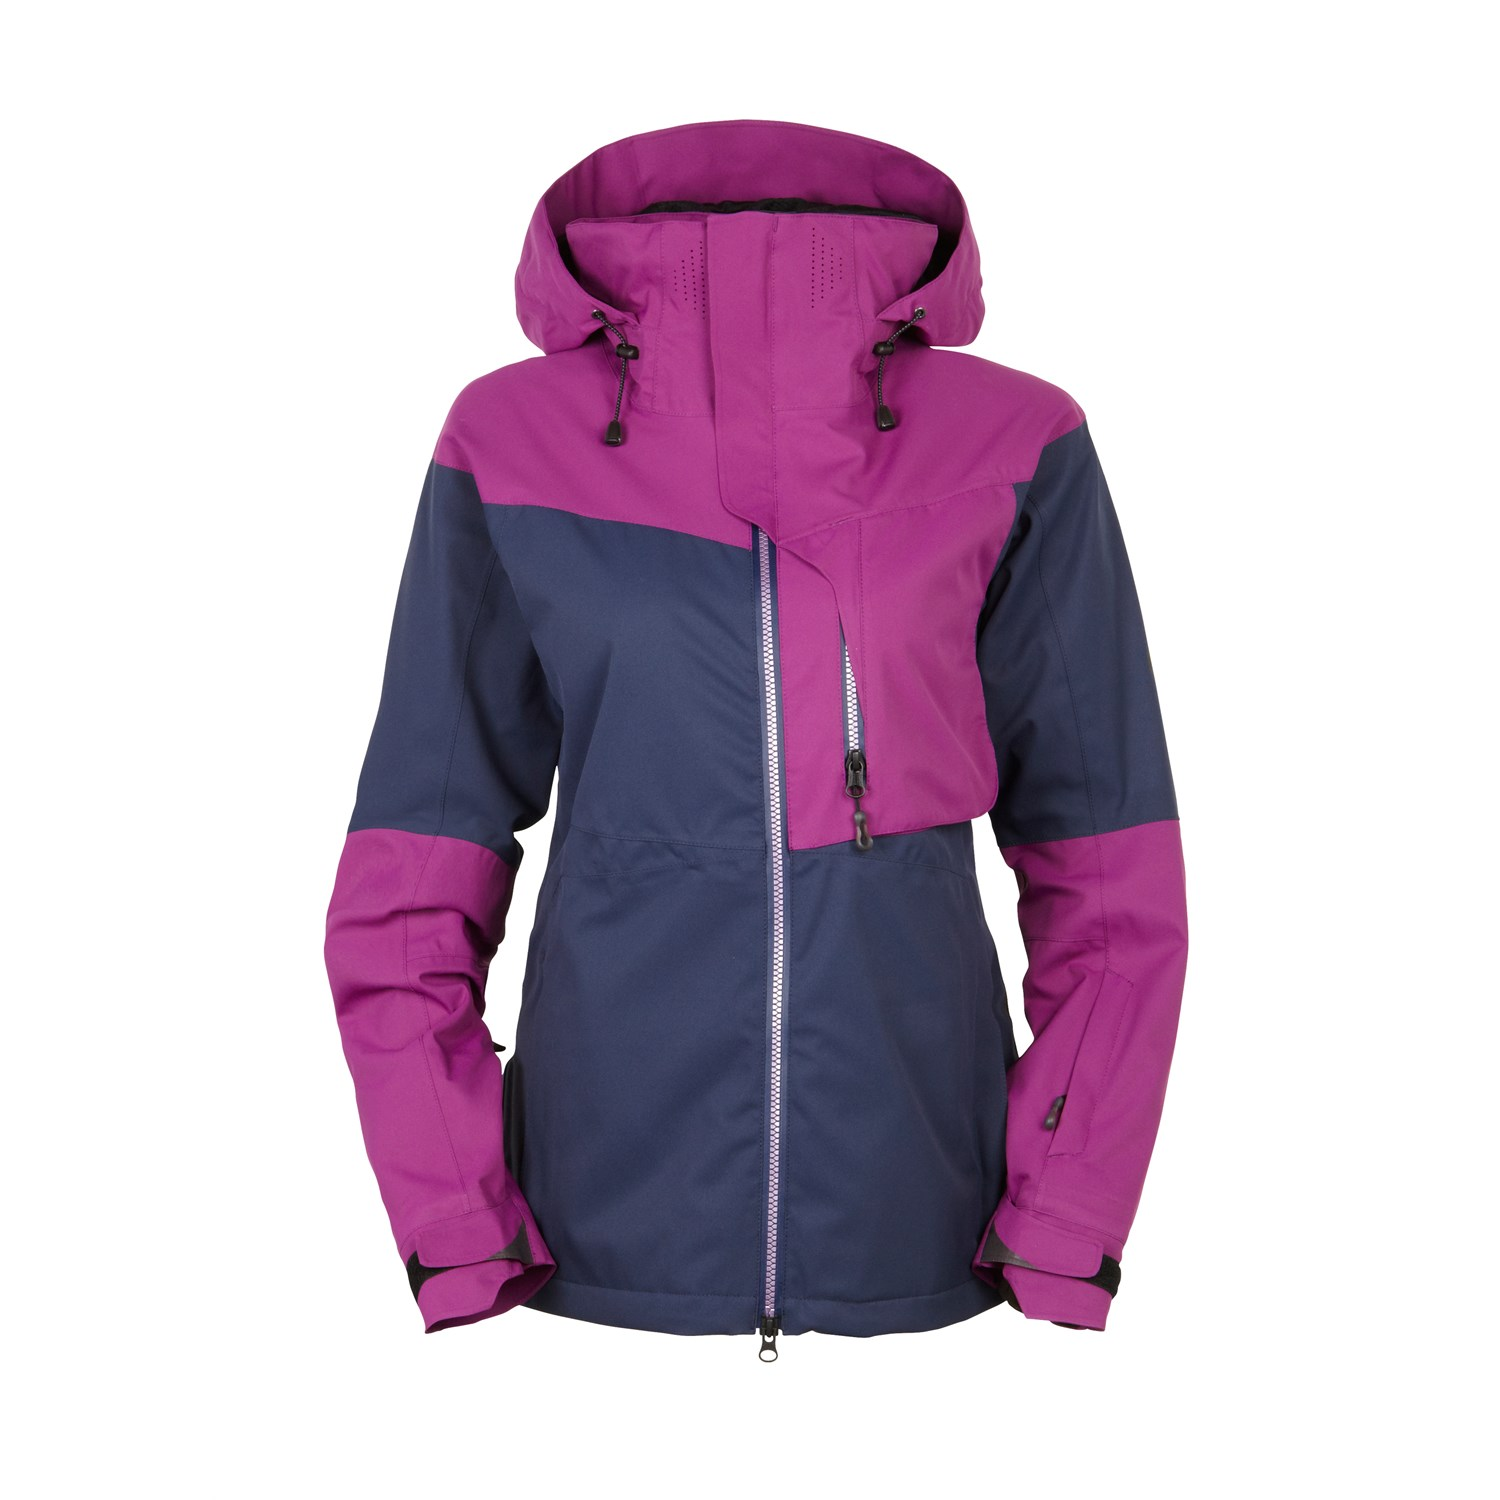 686 GLCR Solstice Thermagraph Jacket - Women s f1b2b16bd